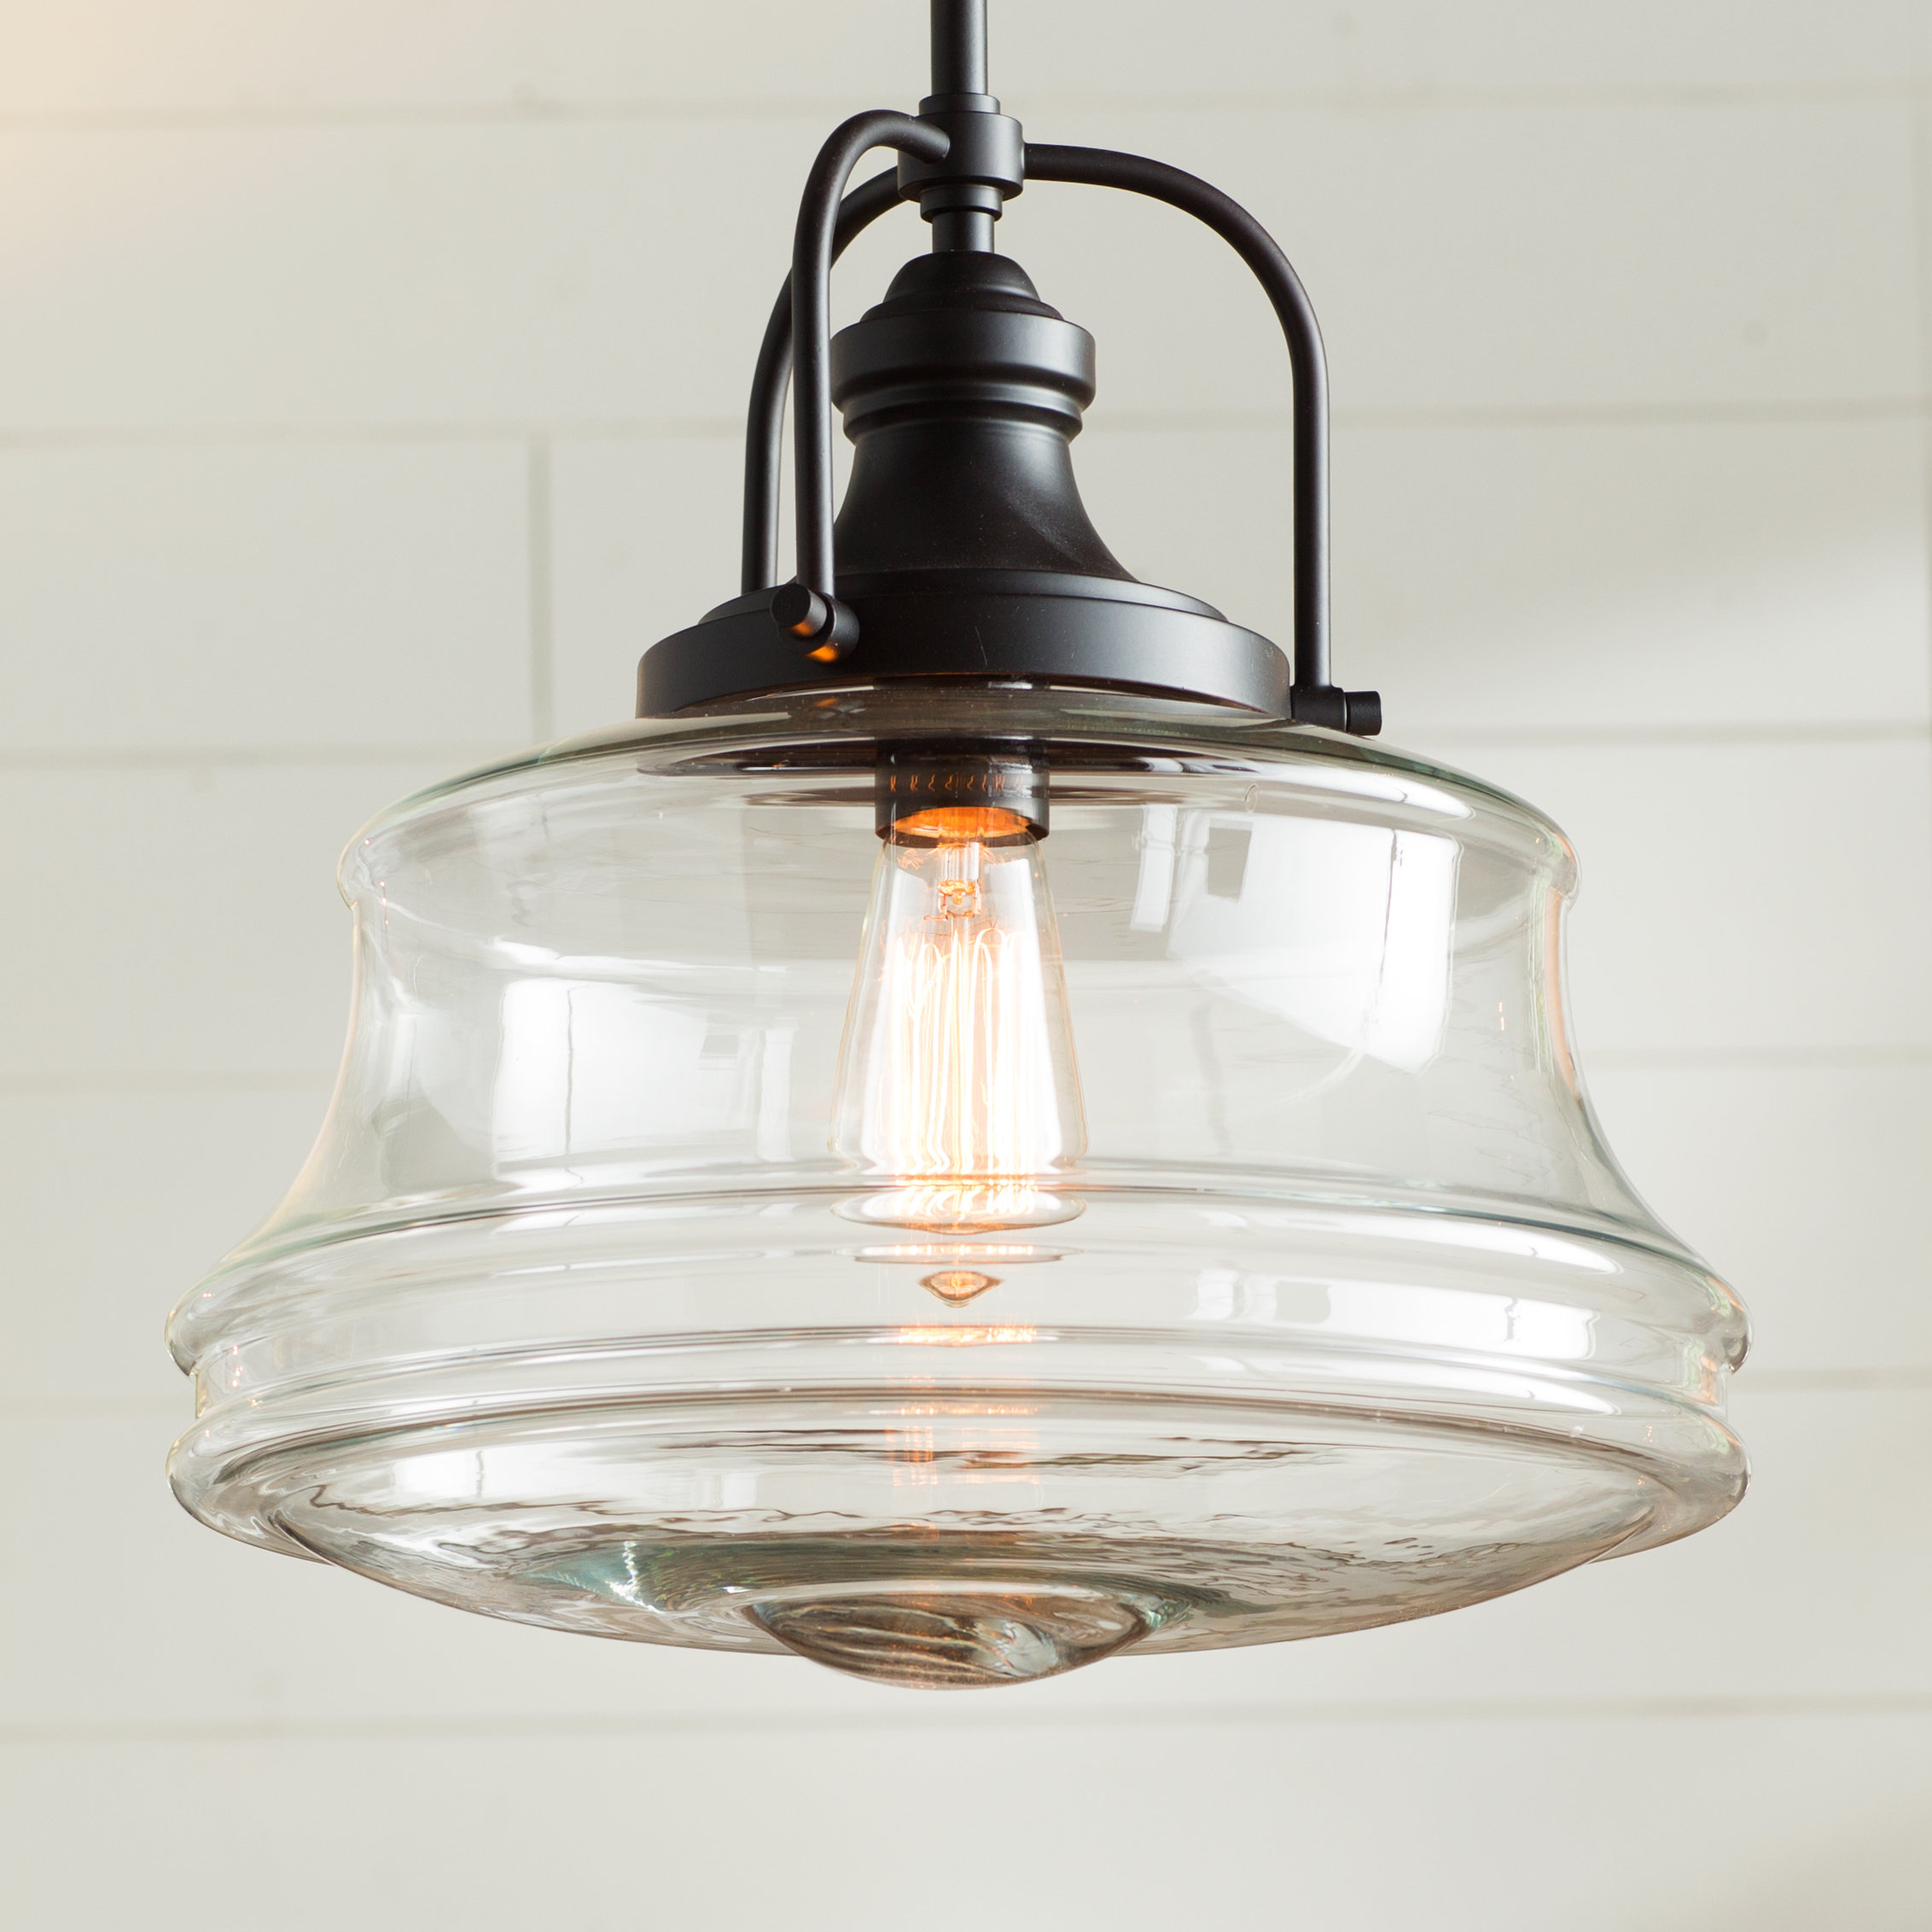 Fashionable Nadine 1 Light Single Schoolhouse Pendants Inside Nadine 1 Light Single Schoolhouse Pendant (Gallery 2 of 20)